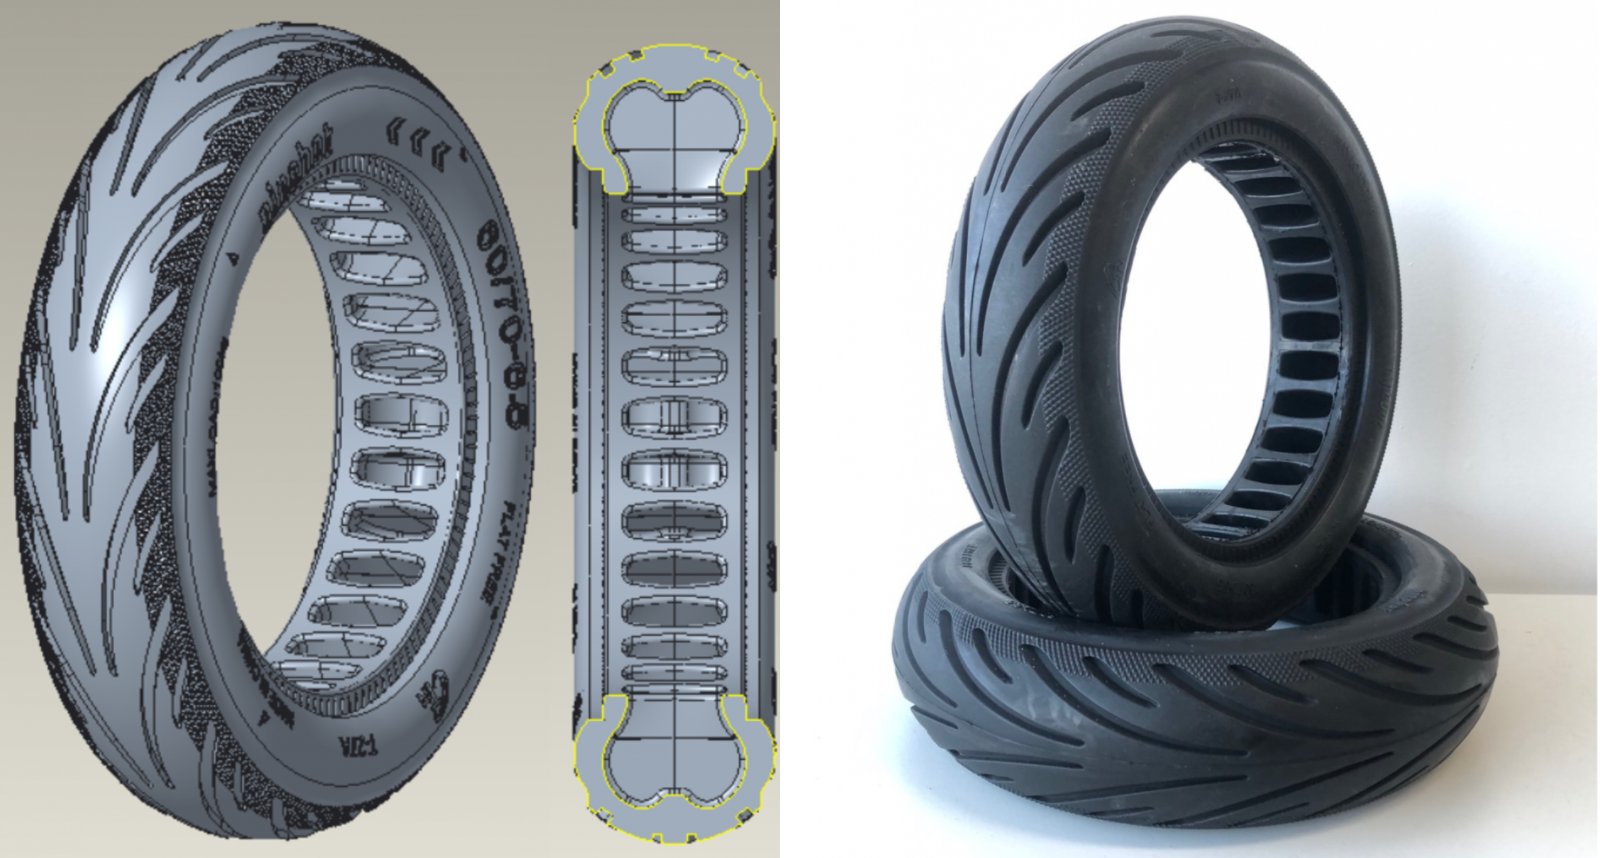 Introducing the Latest Segway Solid Honeycomb Tire